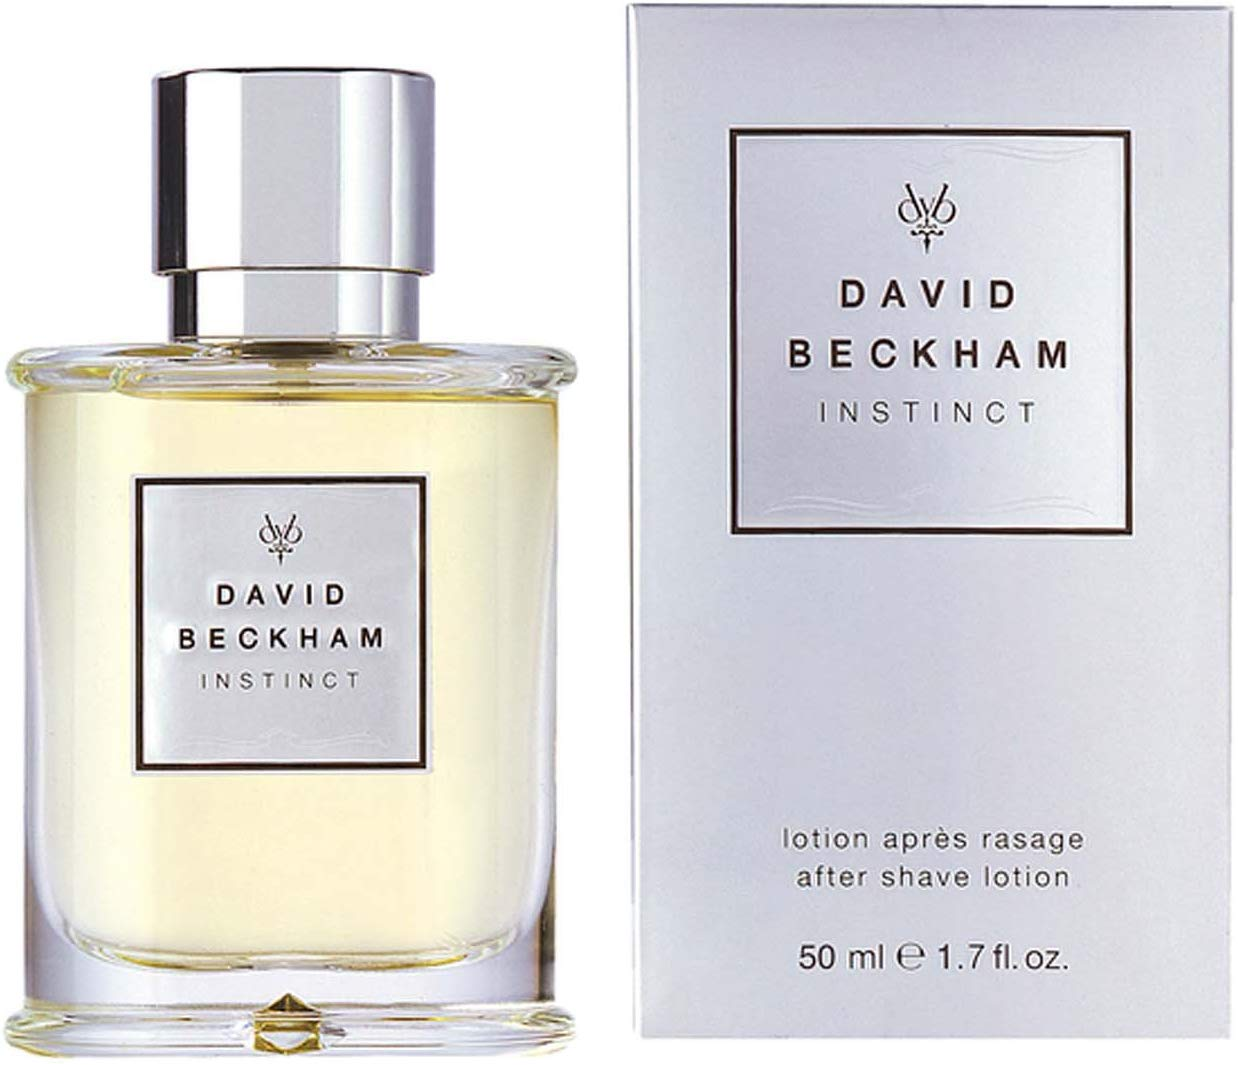 David Beckham Instinct Fragrance Aftershave Lotion for Men, 50 ml for £5.33 Prime +£4.49 Non Prime